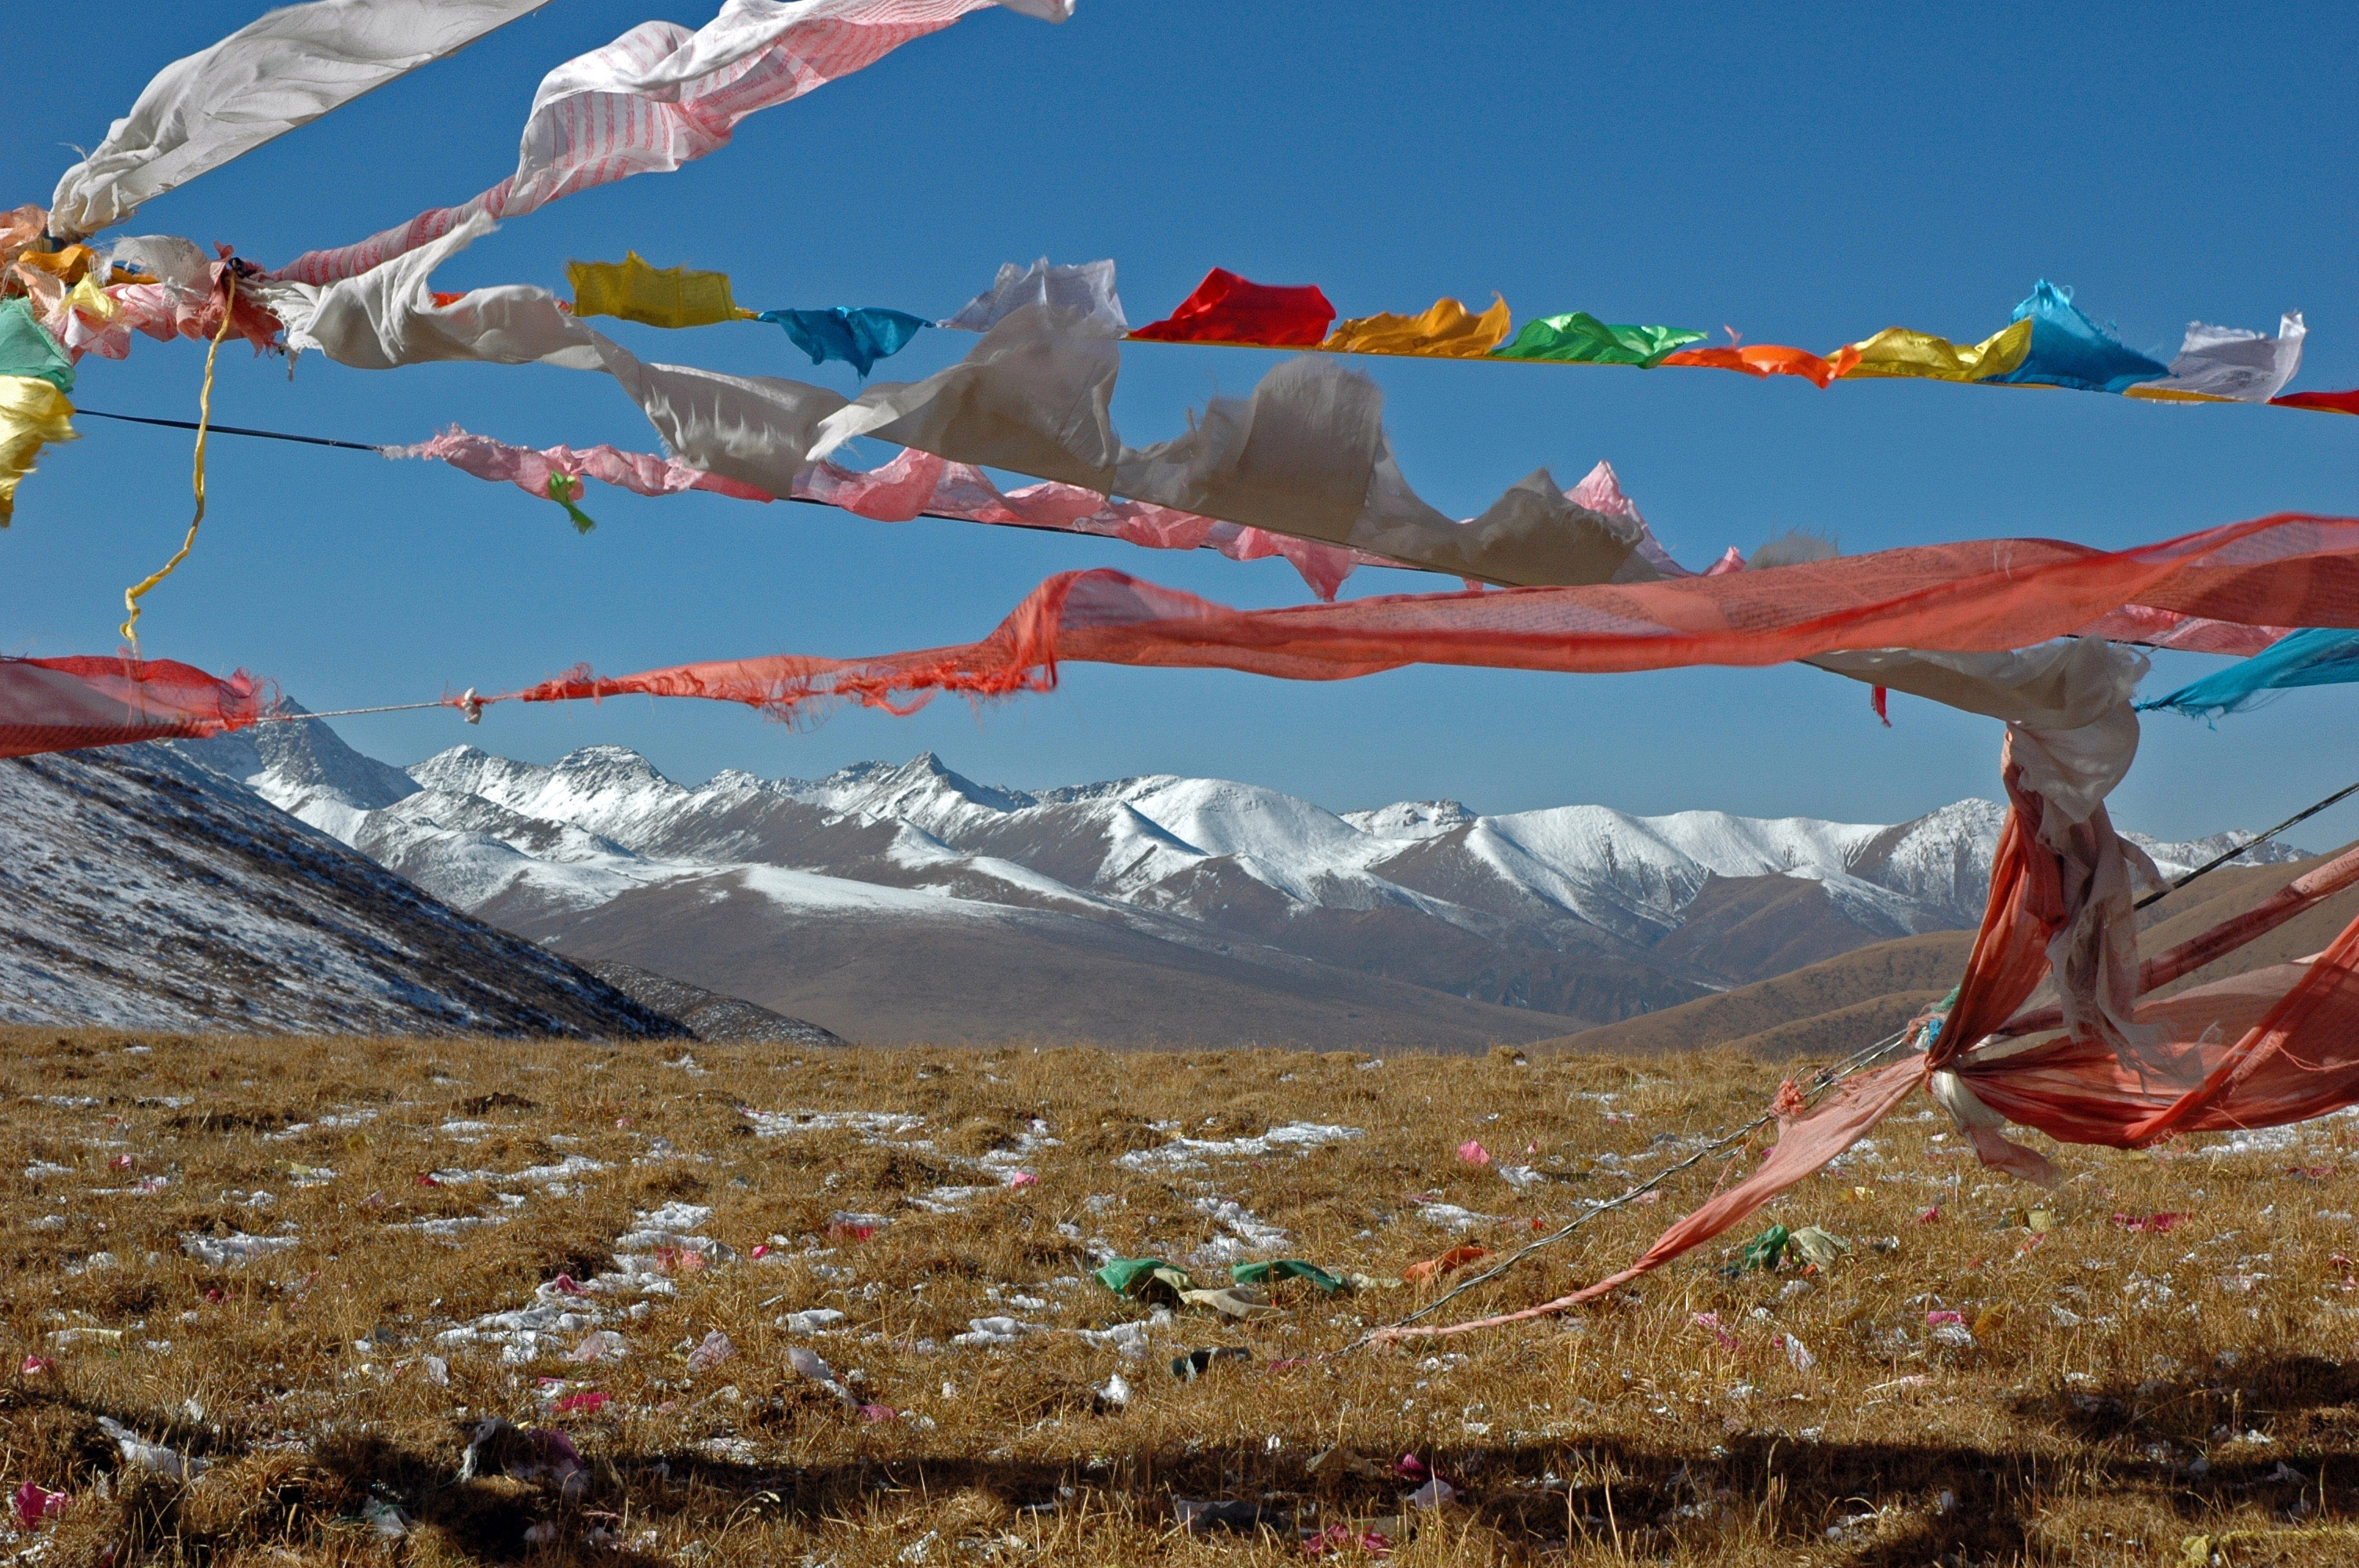 Prayer flags on a high-elevation pass on the Tibetan Plateau. The plateau and the Himalaya Mountains formed as a result of India's collision with Asia over the past 50 million years. Image credit: Marin Clark.